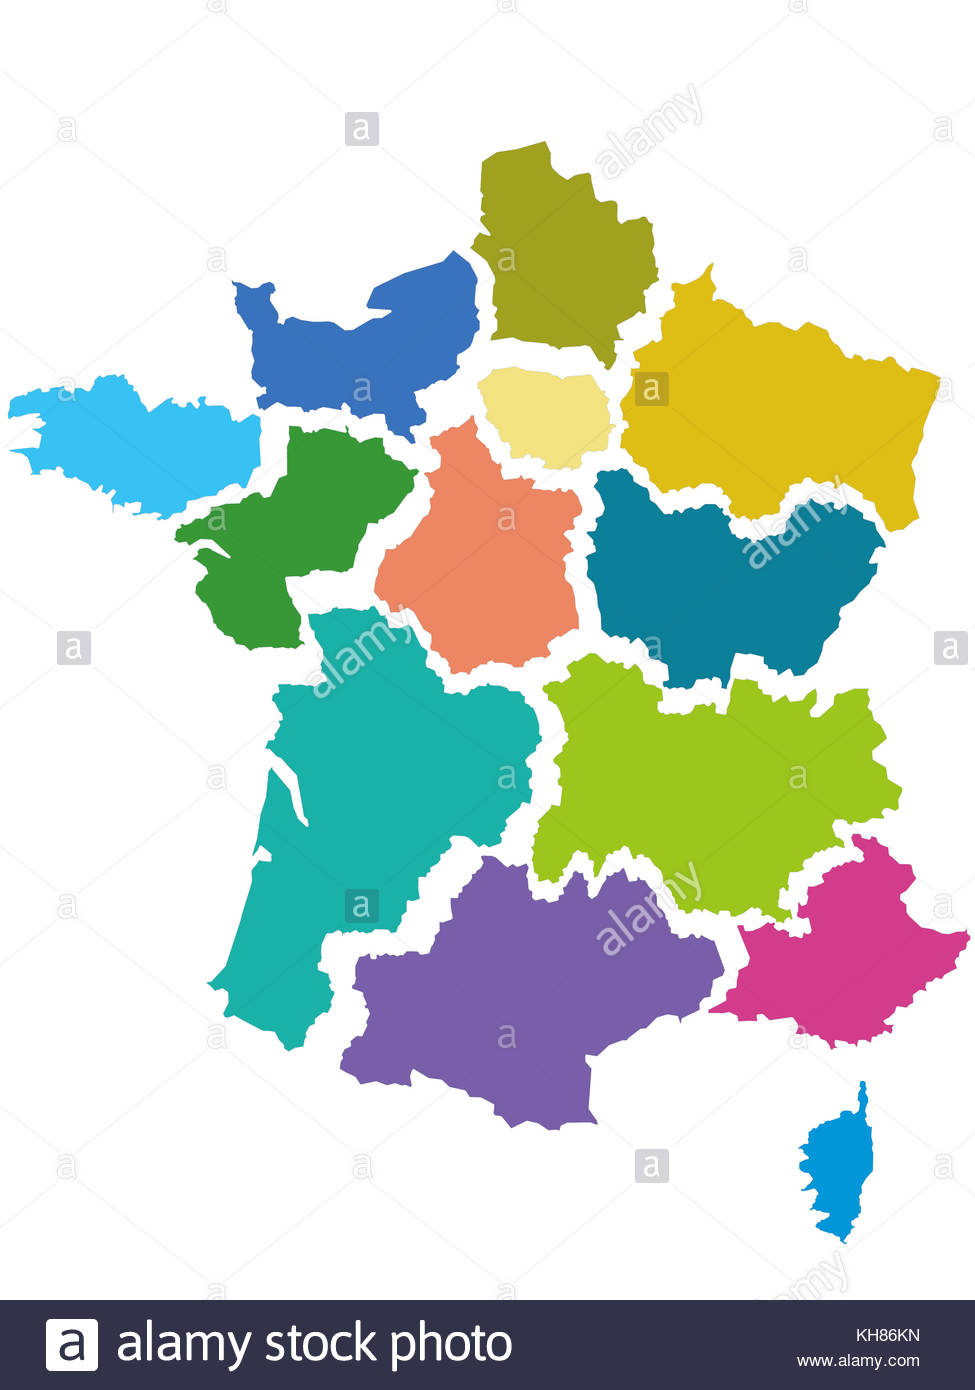 Map Of France With The 13 Regions, Adopted By The Assemblee à 13 Régions Françaises